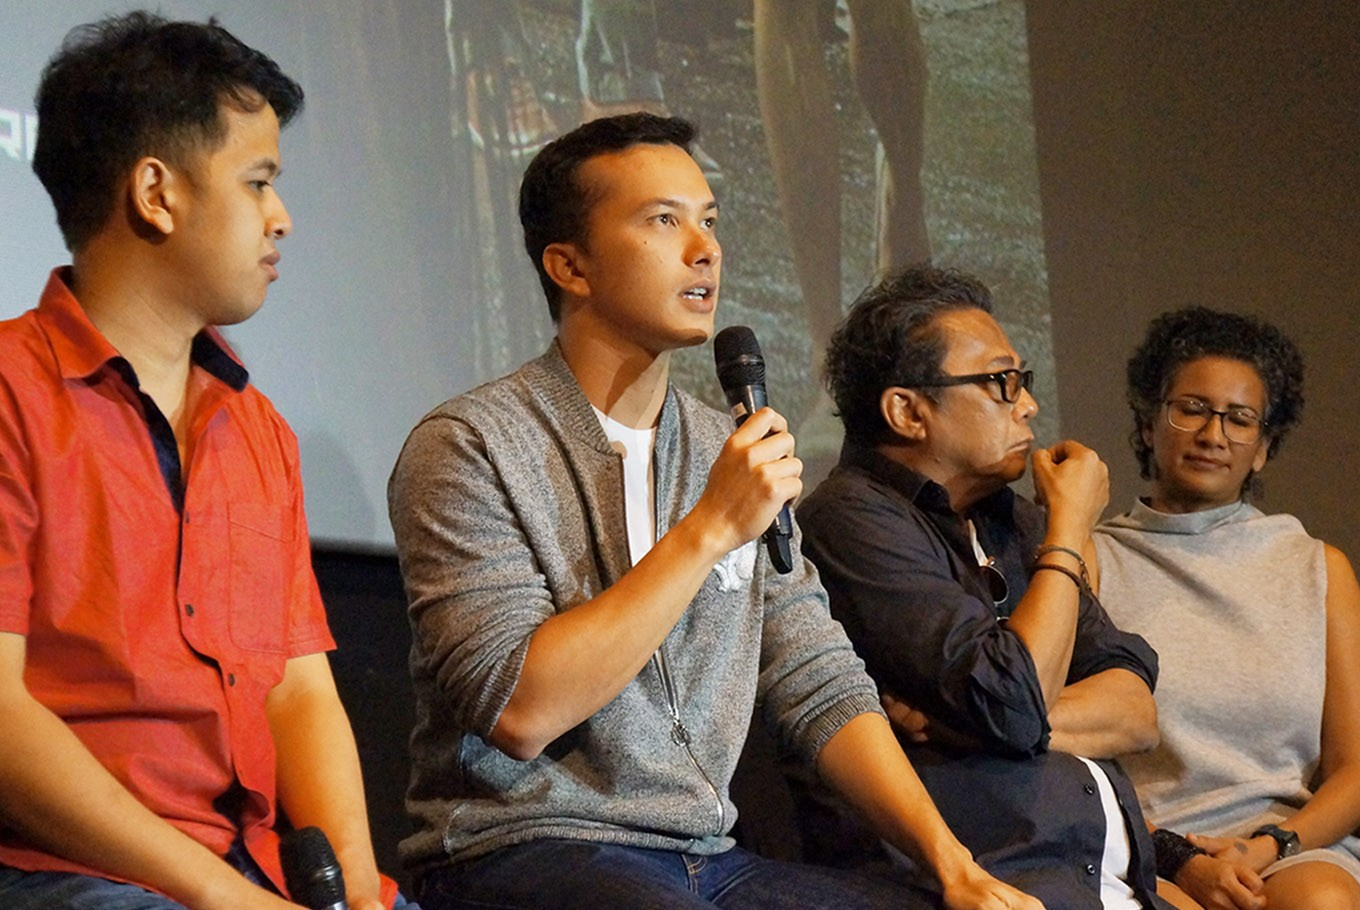 Nicholas Saputra to portray half-human, half-bird creature in upcoming film